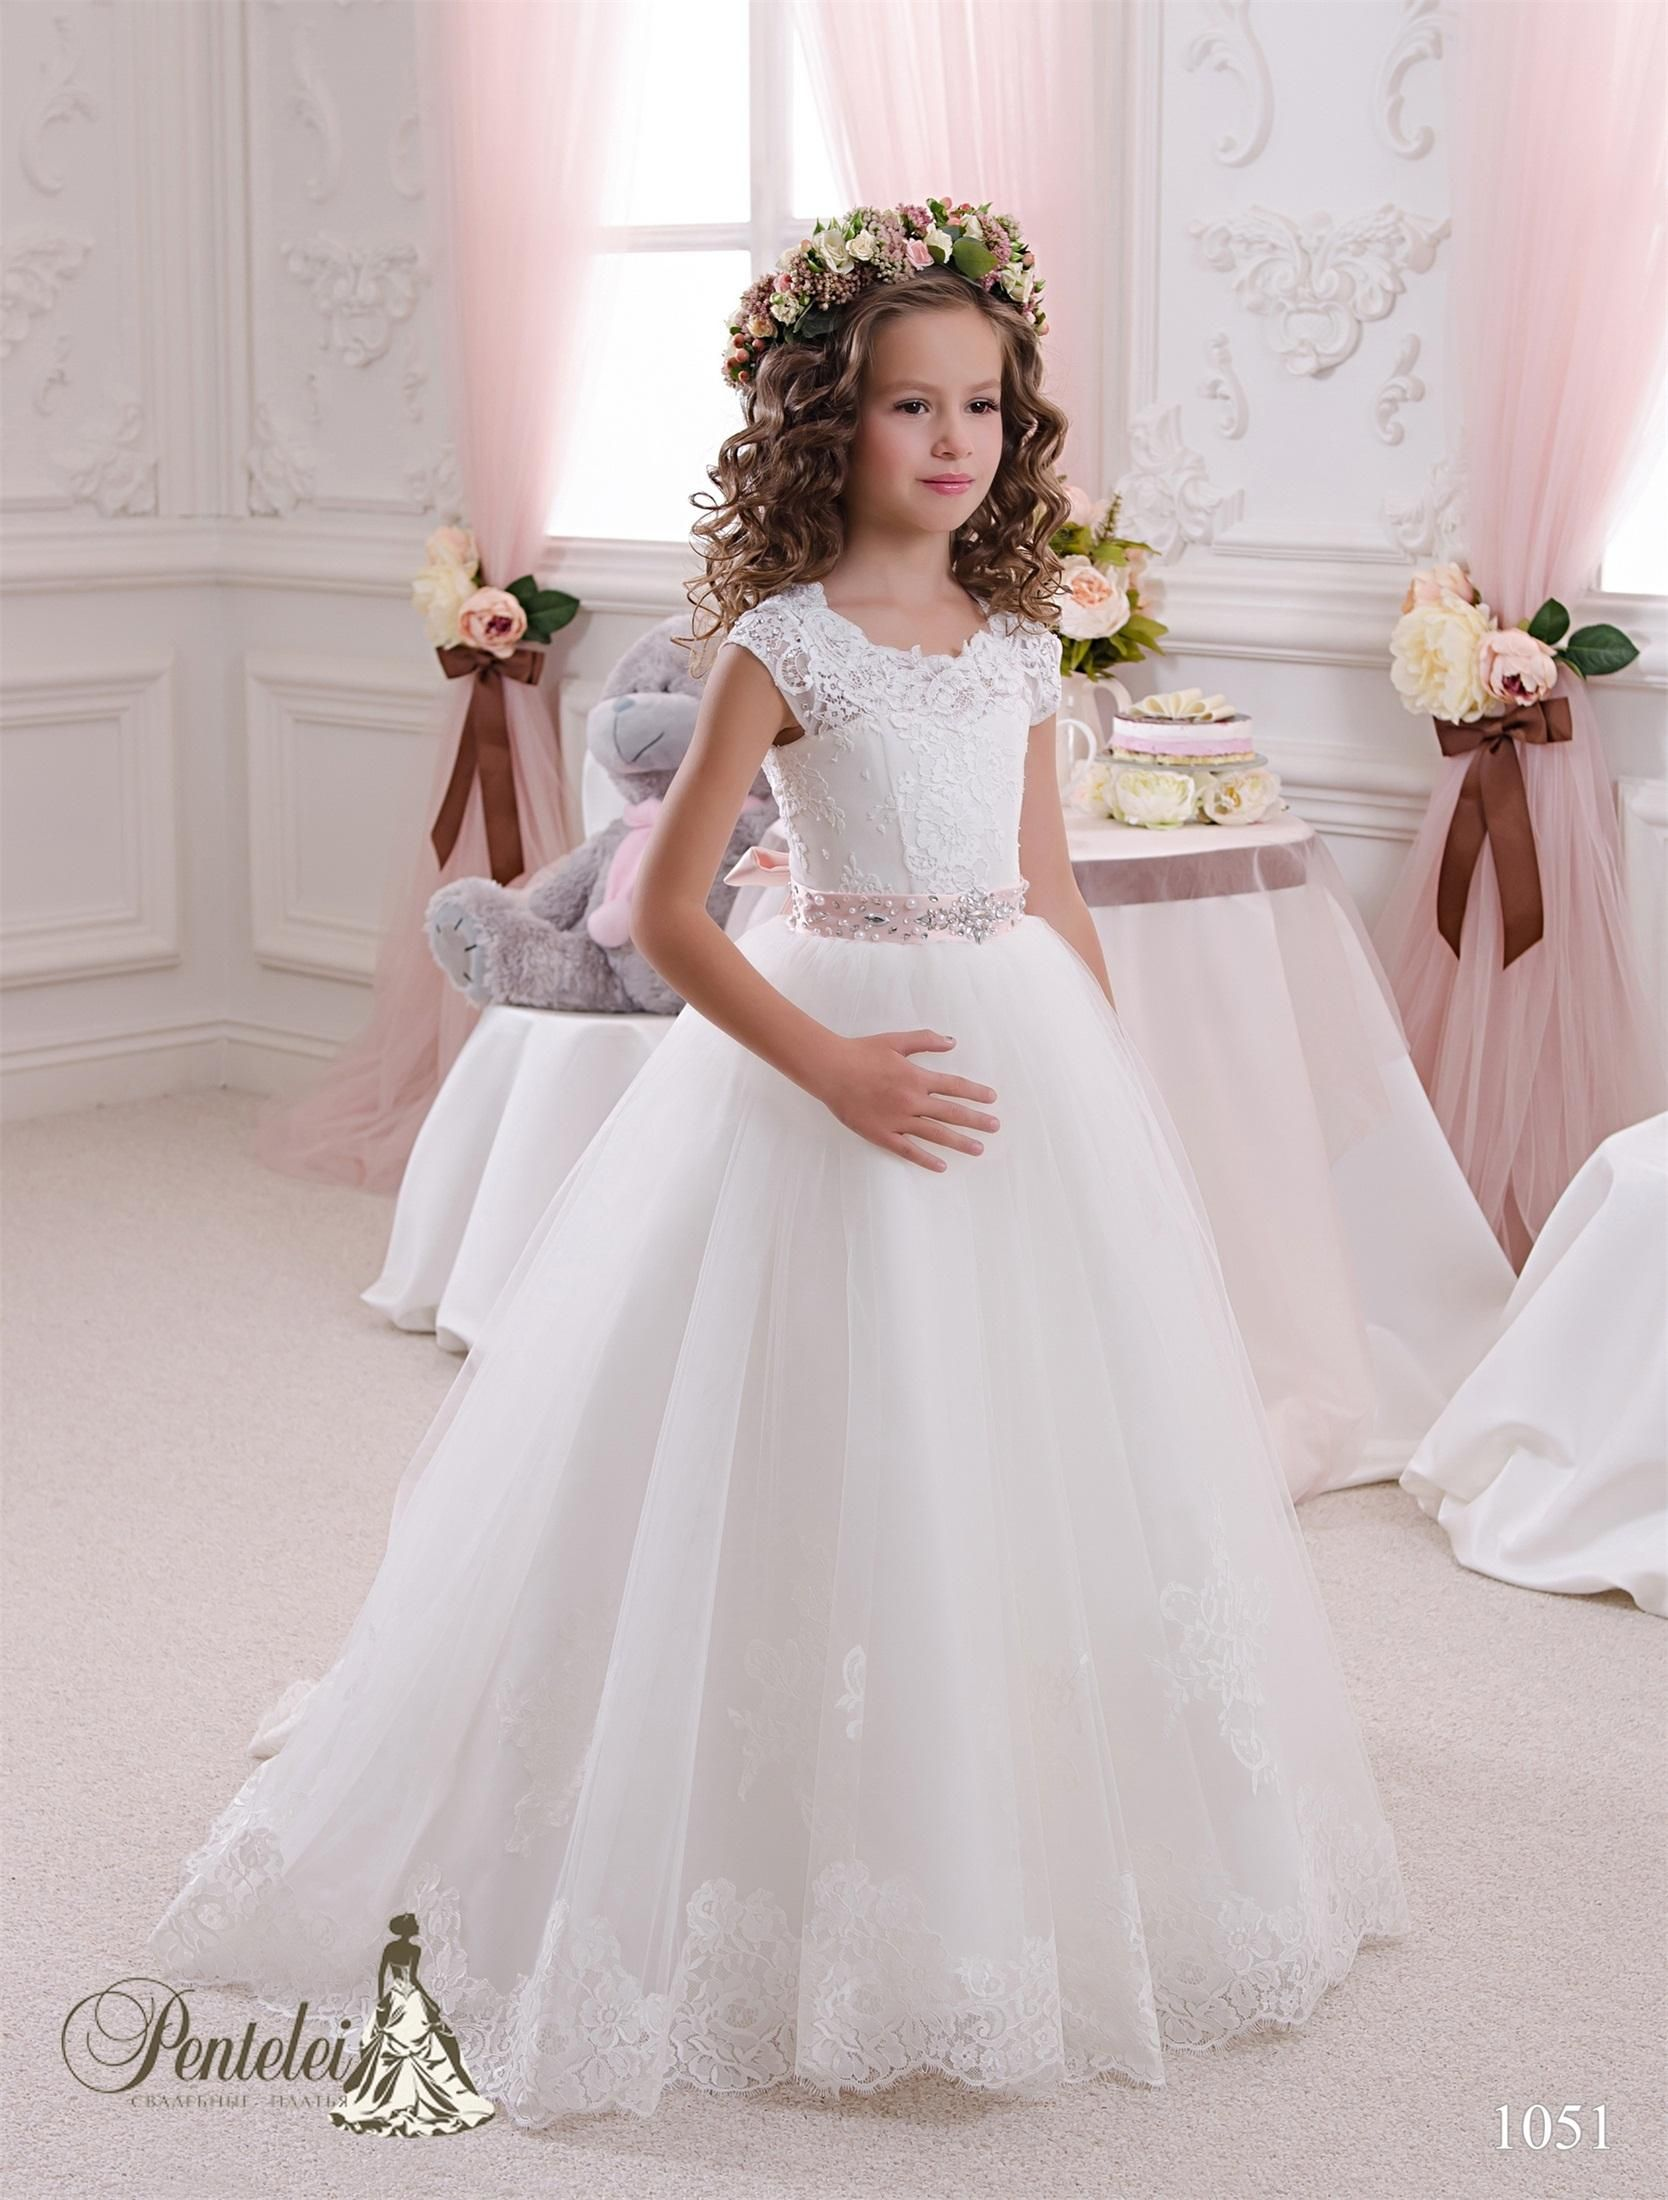 2016 kids wedding dresses with cap sleeves jewel neck appliques tulle ball gown flower girls. Black Bedroom Furniture Sets. Home Design Ideas